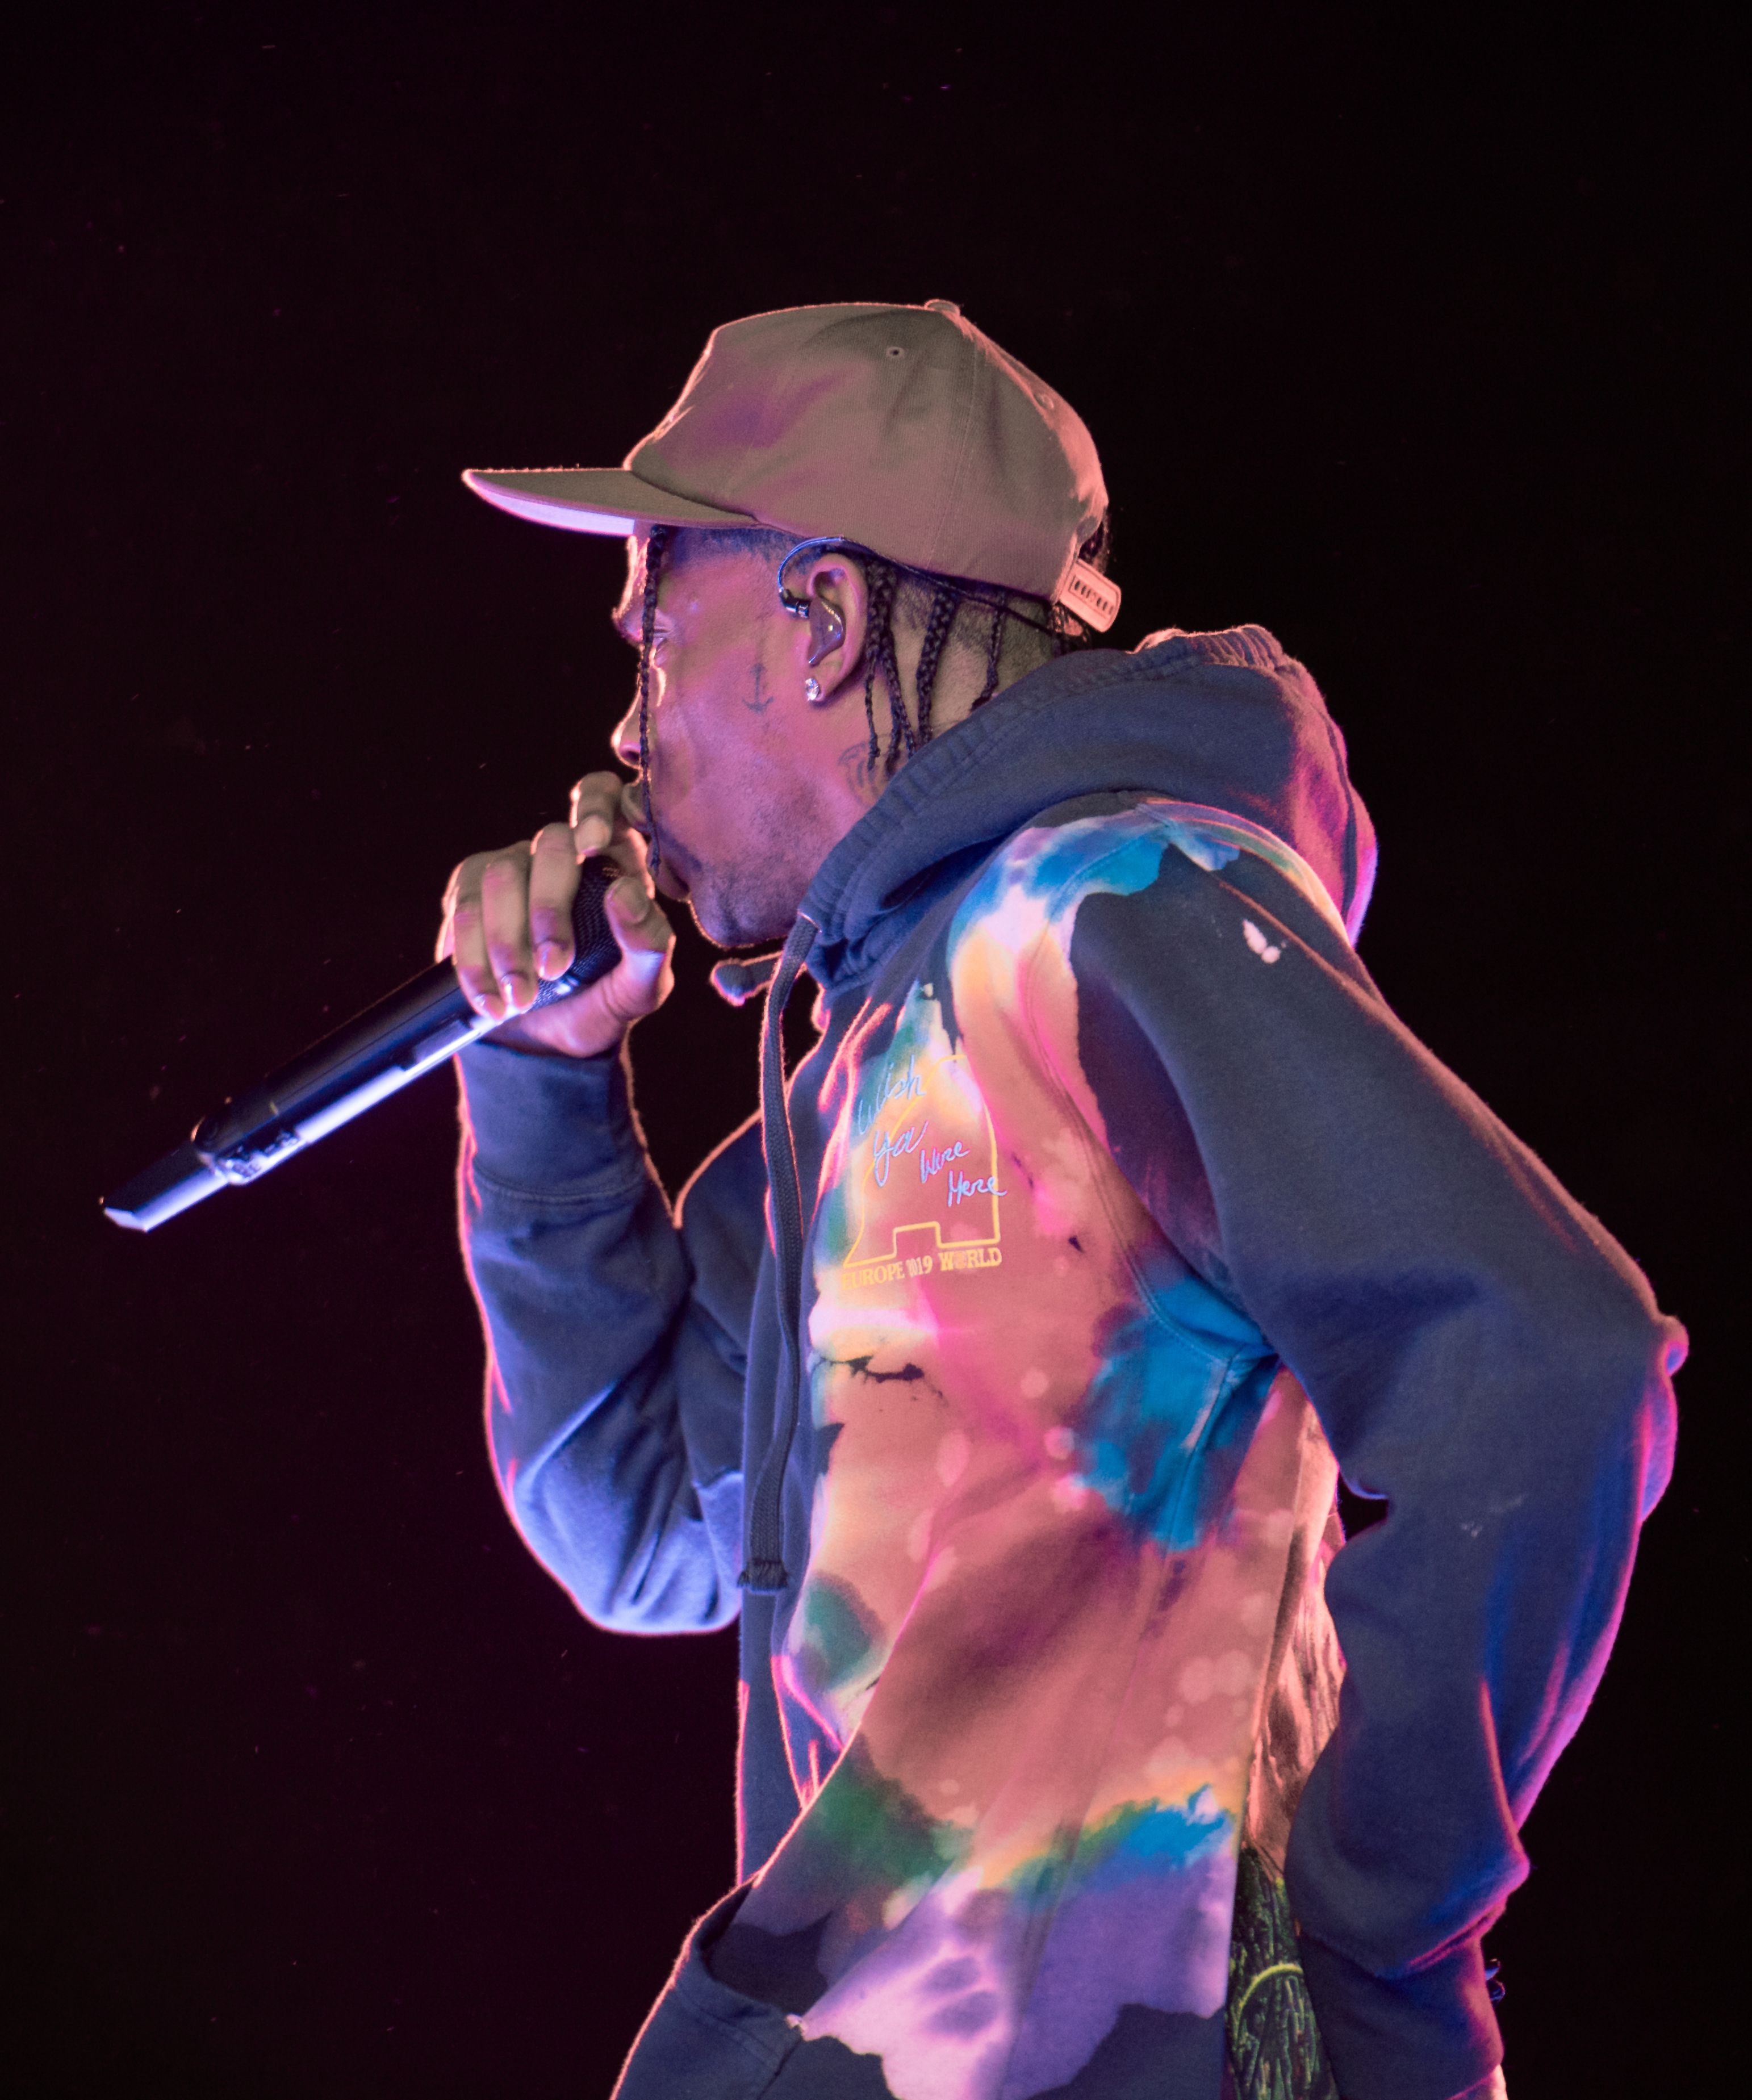 Pin By Daniel On Travis Scott Travis Scott Wallpapers Travis Scott Outfits Travis Scott